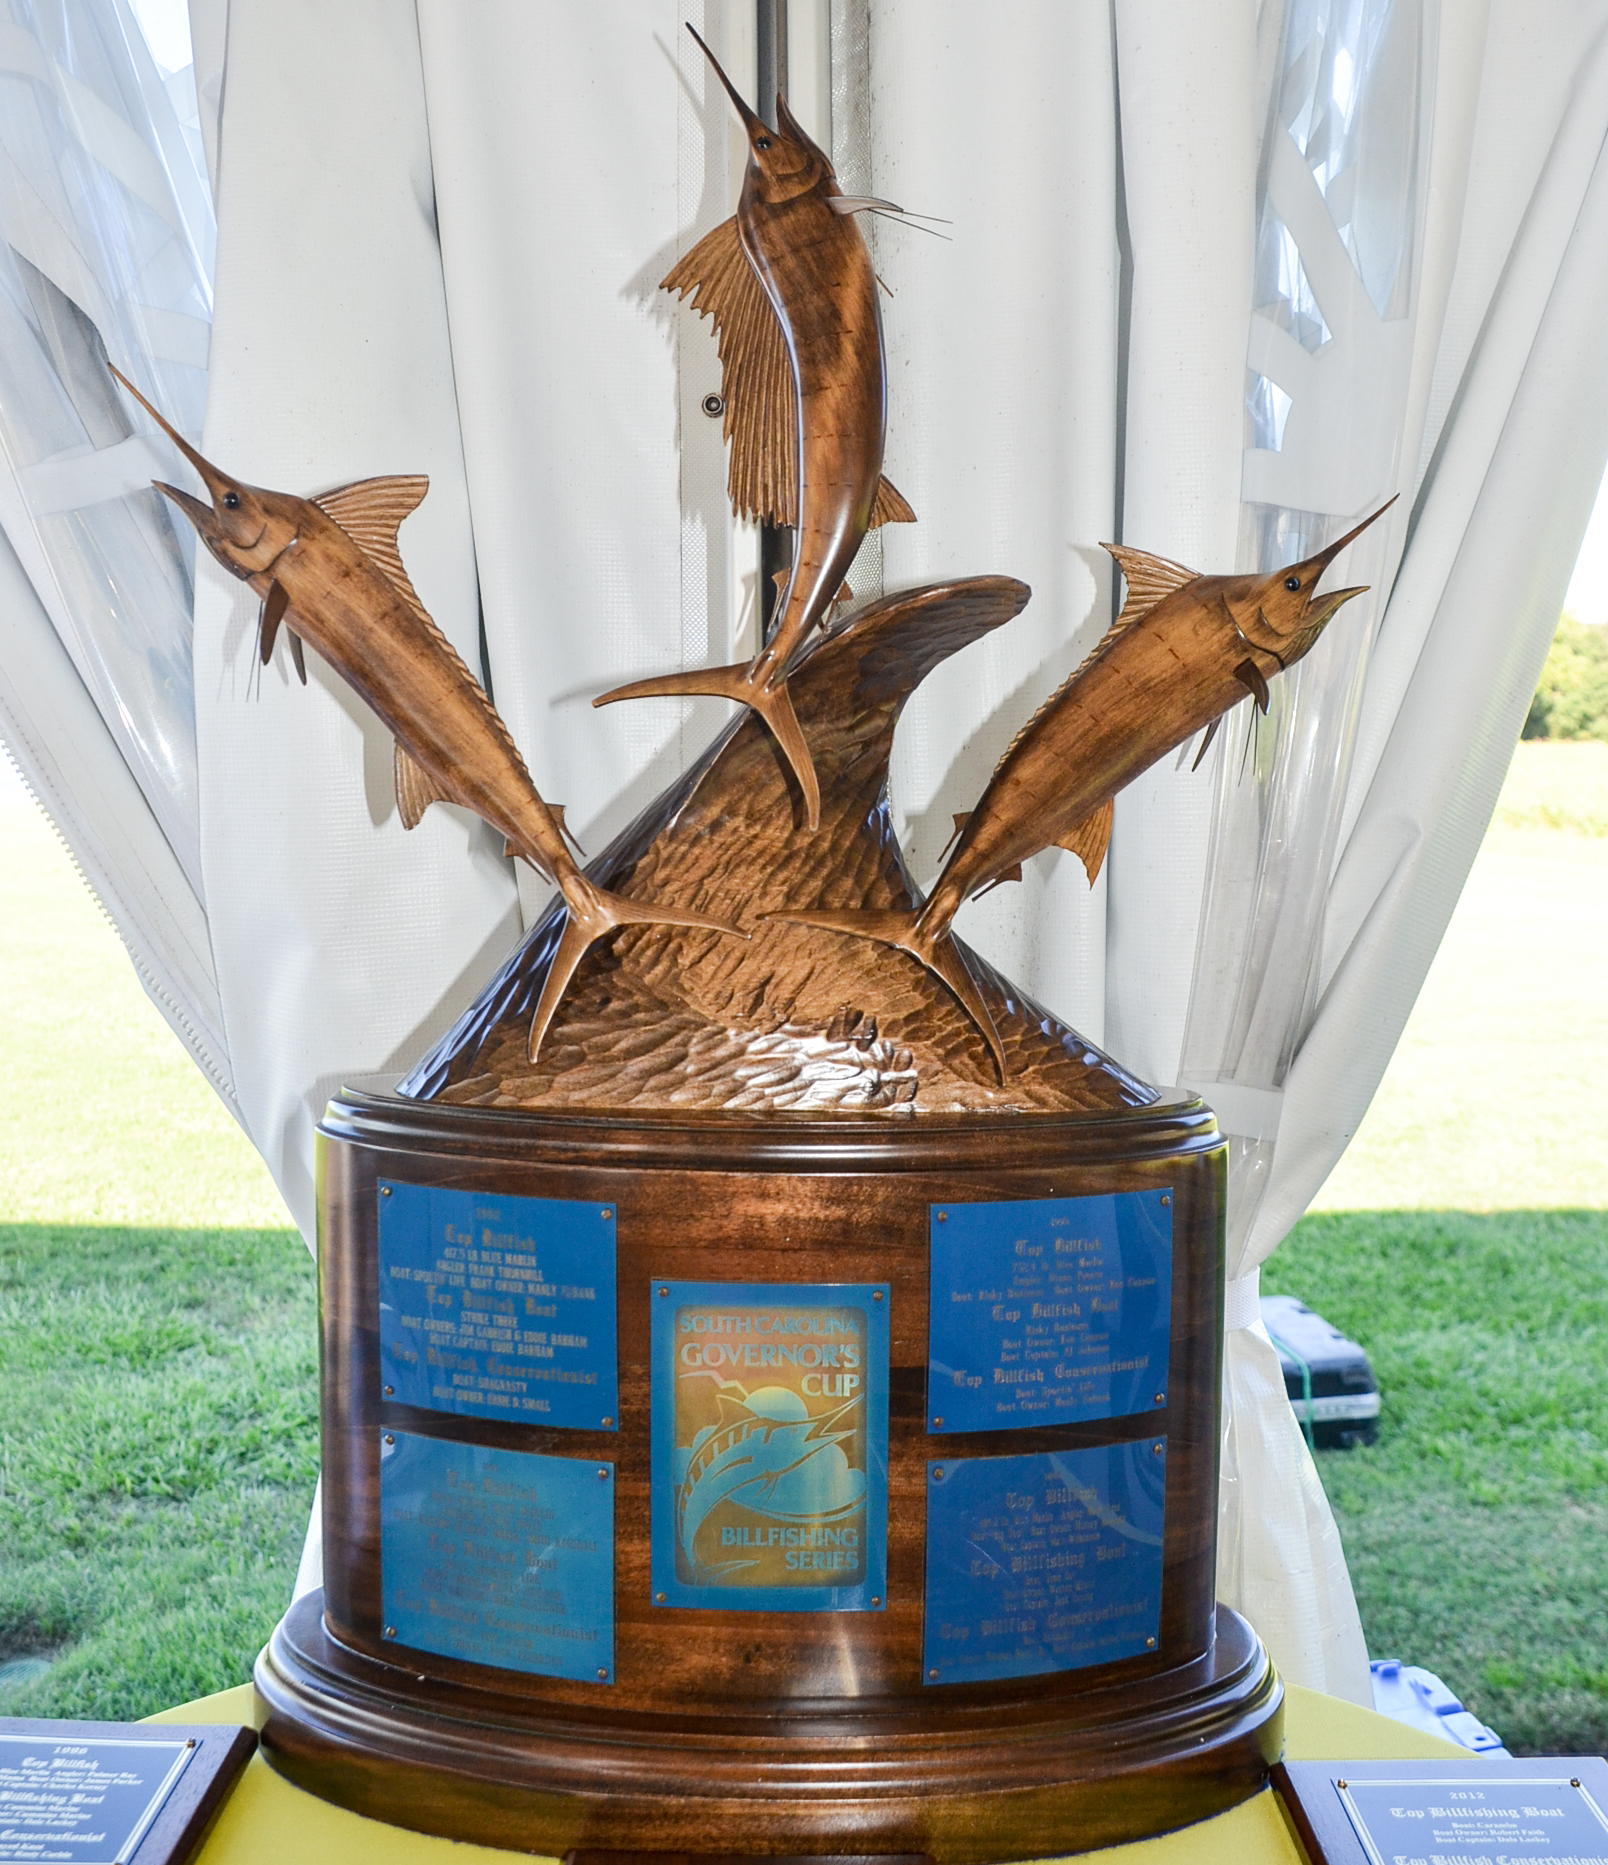 The Perpetual Trophy